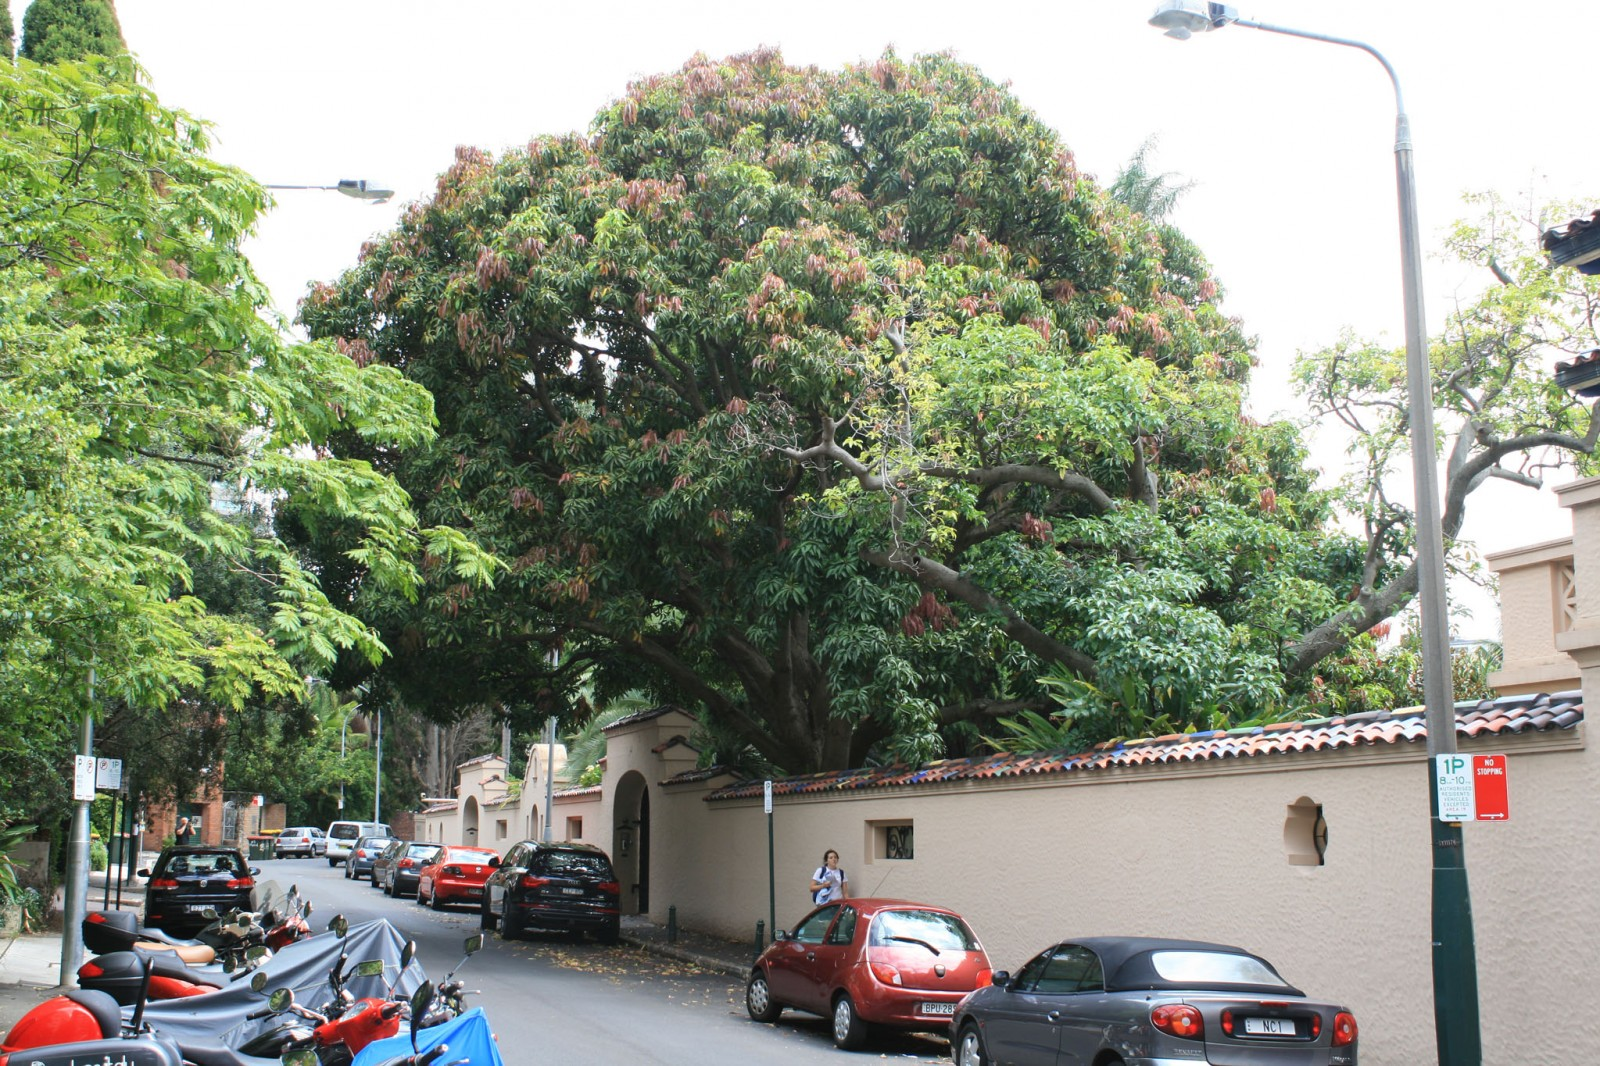 A large Mango Tree (Mangifera indica) located adjacent to